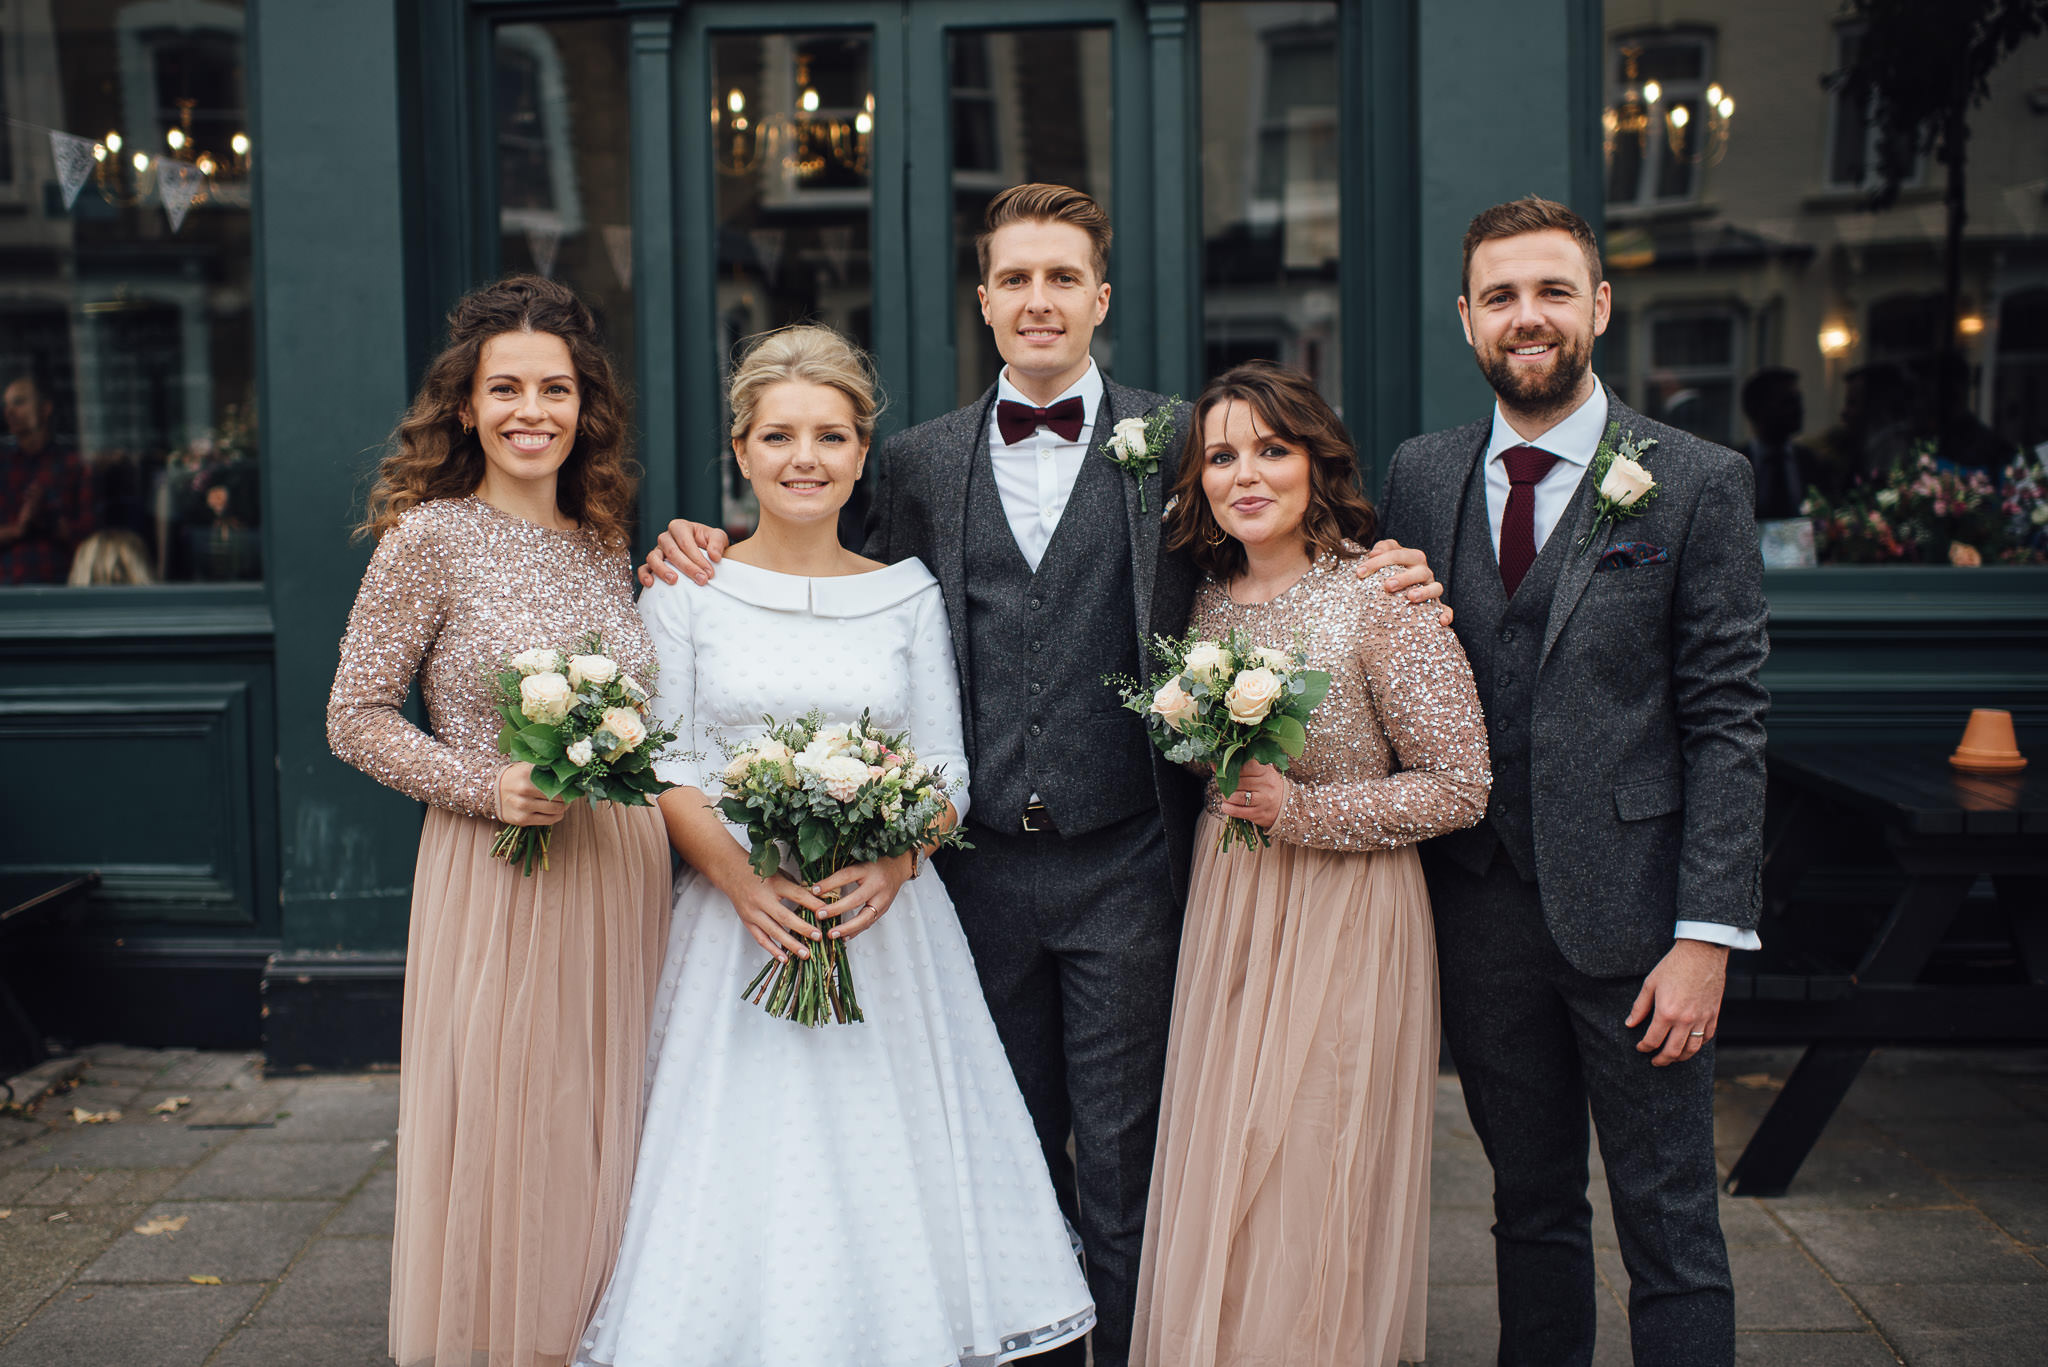 Bridal party outside londesborough pub in stoke newington town hall wedding by creative and alternative london wedding photographer the shannons photography